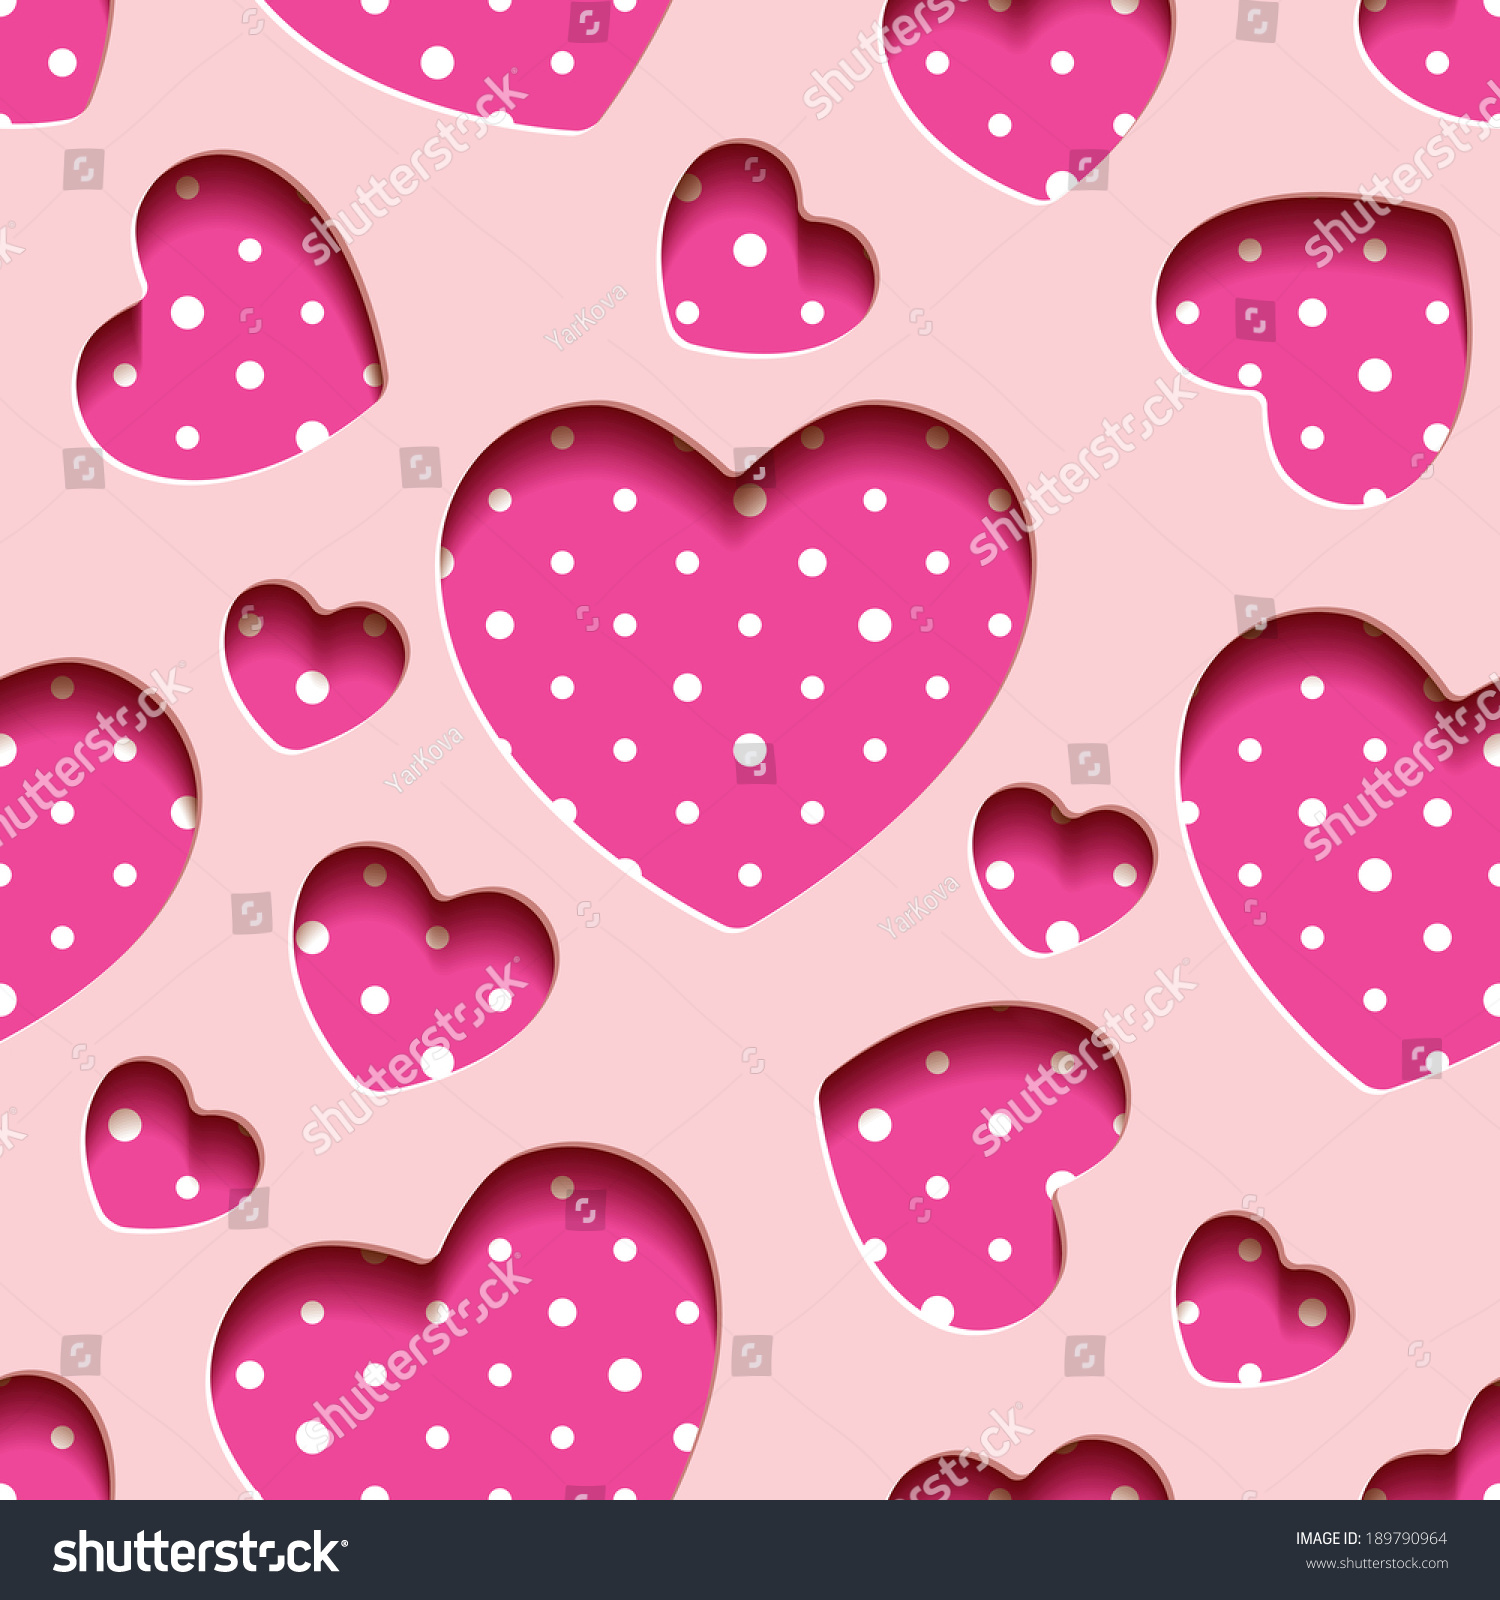 Pink Seamless Texture Form Application Slotted Stock Vector ... on aeropostale application, burlington coat factory application, petco application, gap application, staples application, christmas application, petsmart application, dog application, baby application, charlotte russe application, old navy application, checkers application, dollar tree application, rue 21 application,